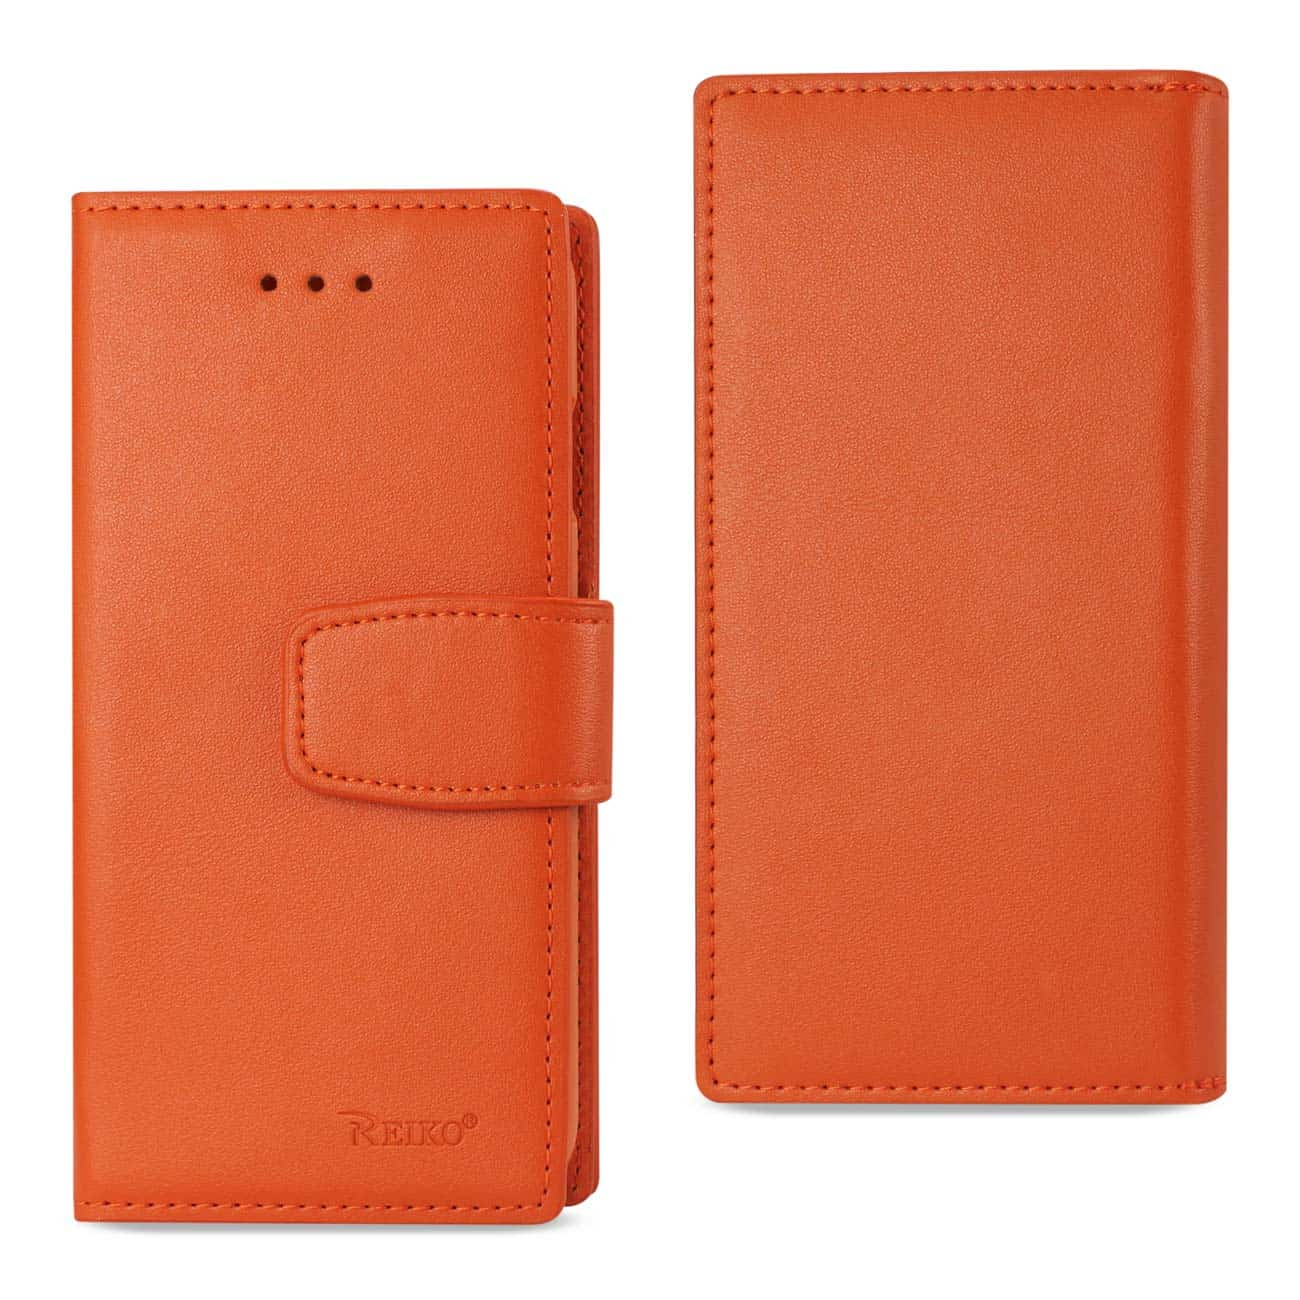 IPHONE 7 GENUINE LEATHER WALLET CASE WITH RFID CARD PROTECTION IN TANGERINE